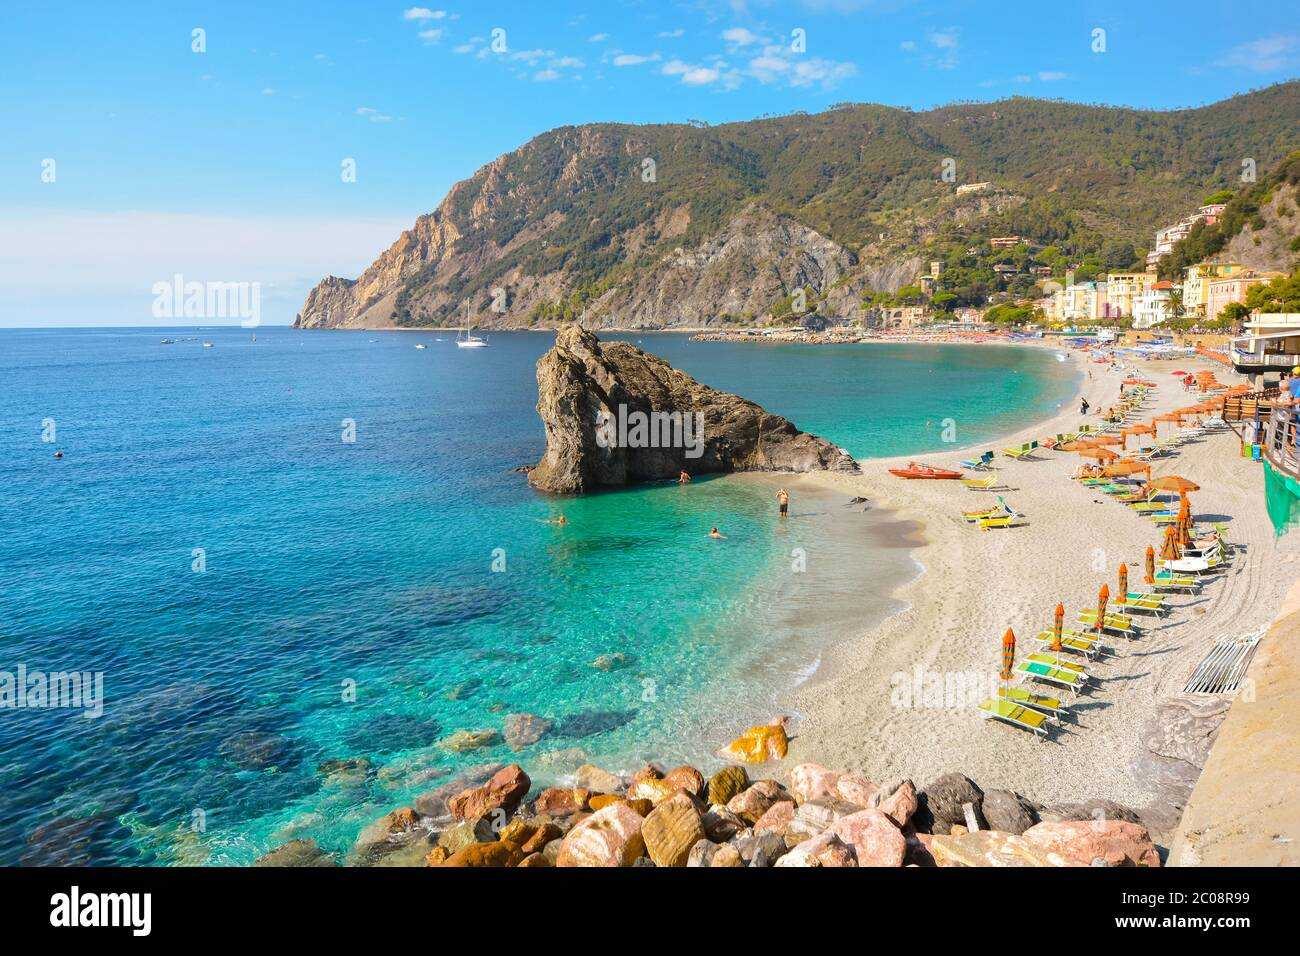 The sandy beach at the Italian village of Monterosso al Mare on the Ligurian coast, part of the Cinque Terre, an Unesco World Heritage Site. Stock Photo